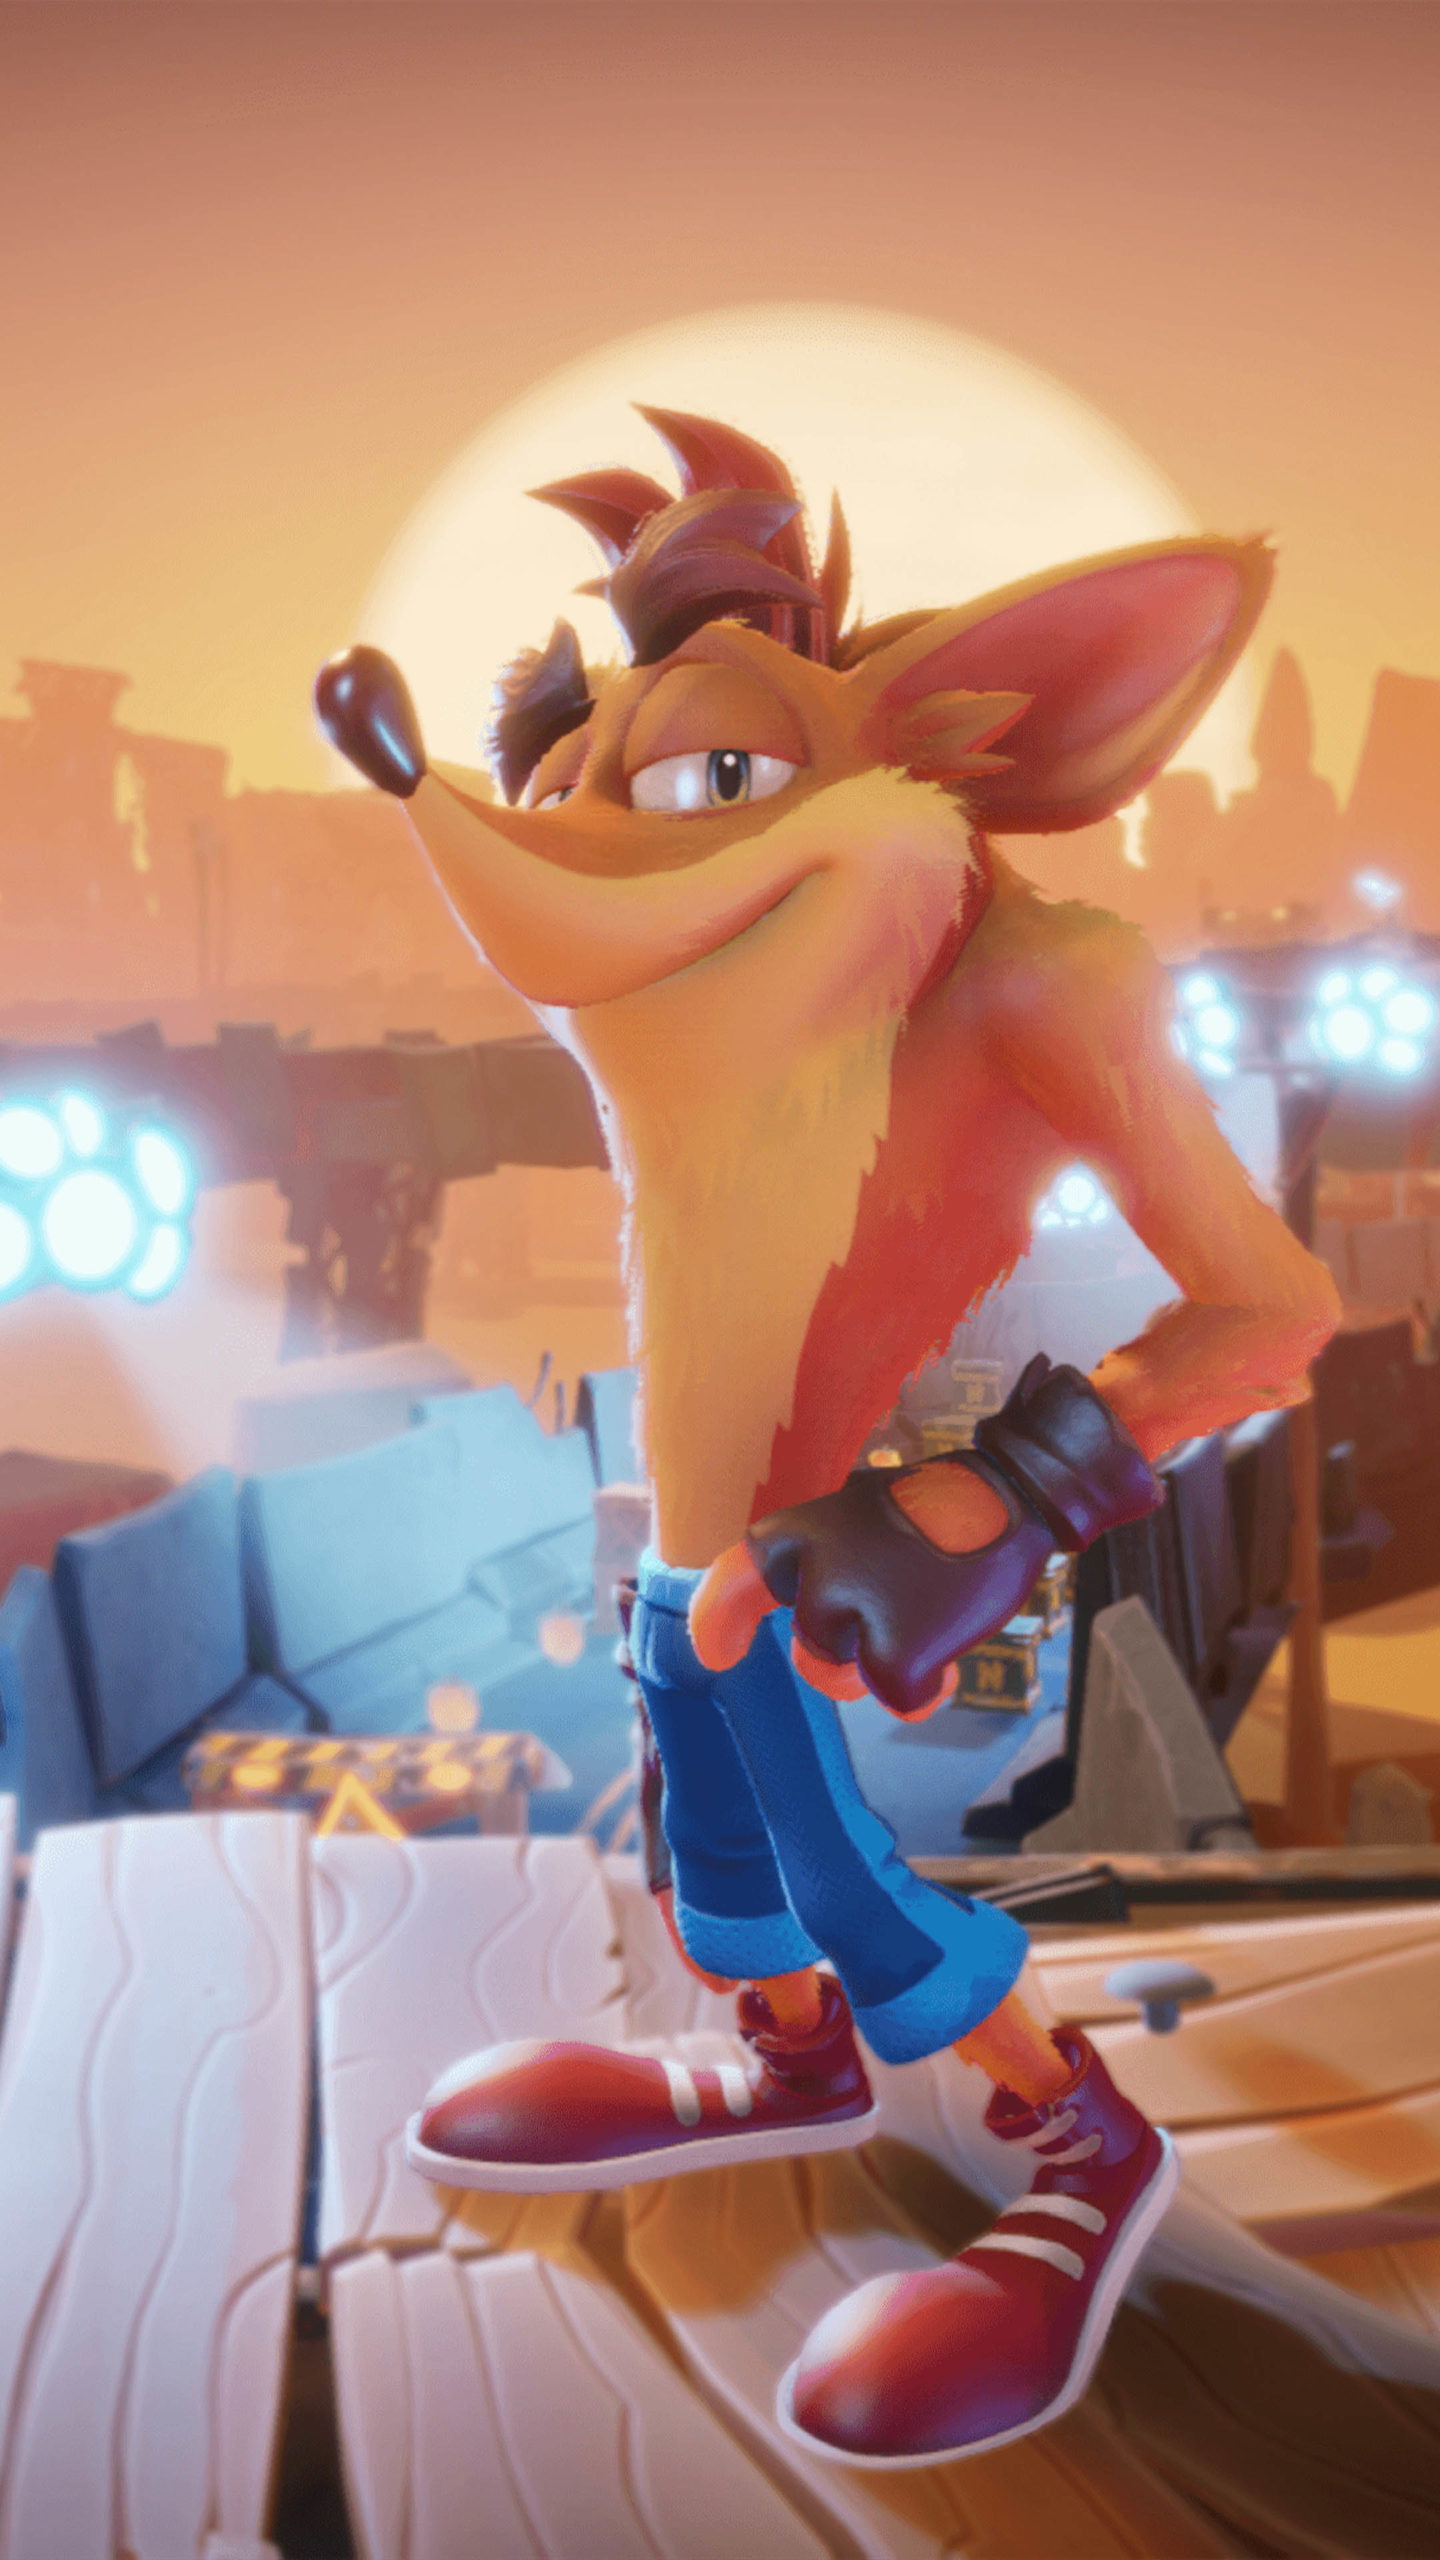 Crash Bandicoot 4 It S About Time Game 2020 4k Ultra Hd Mobile Wallpaper